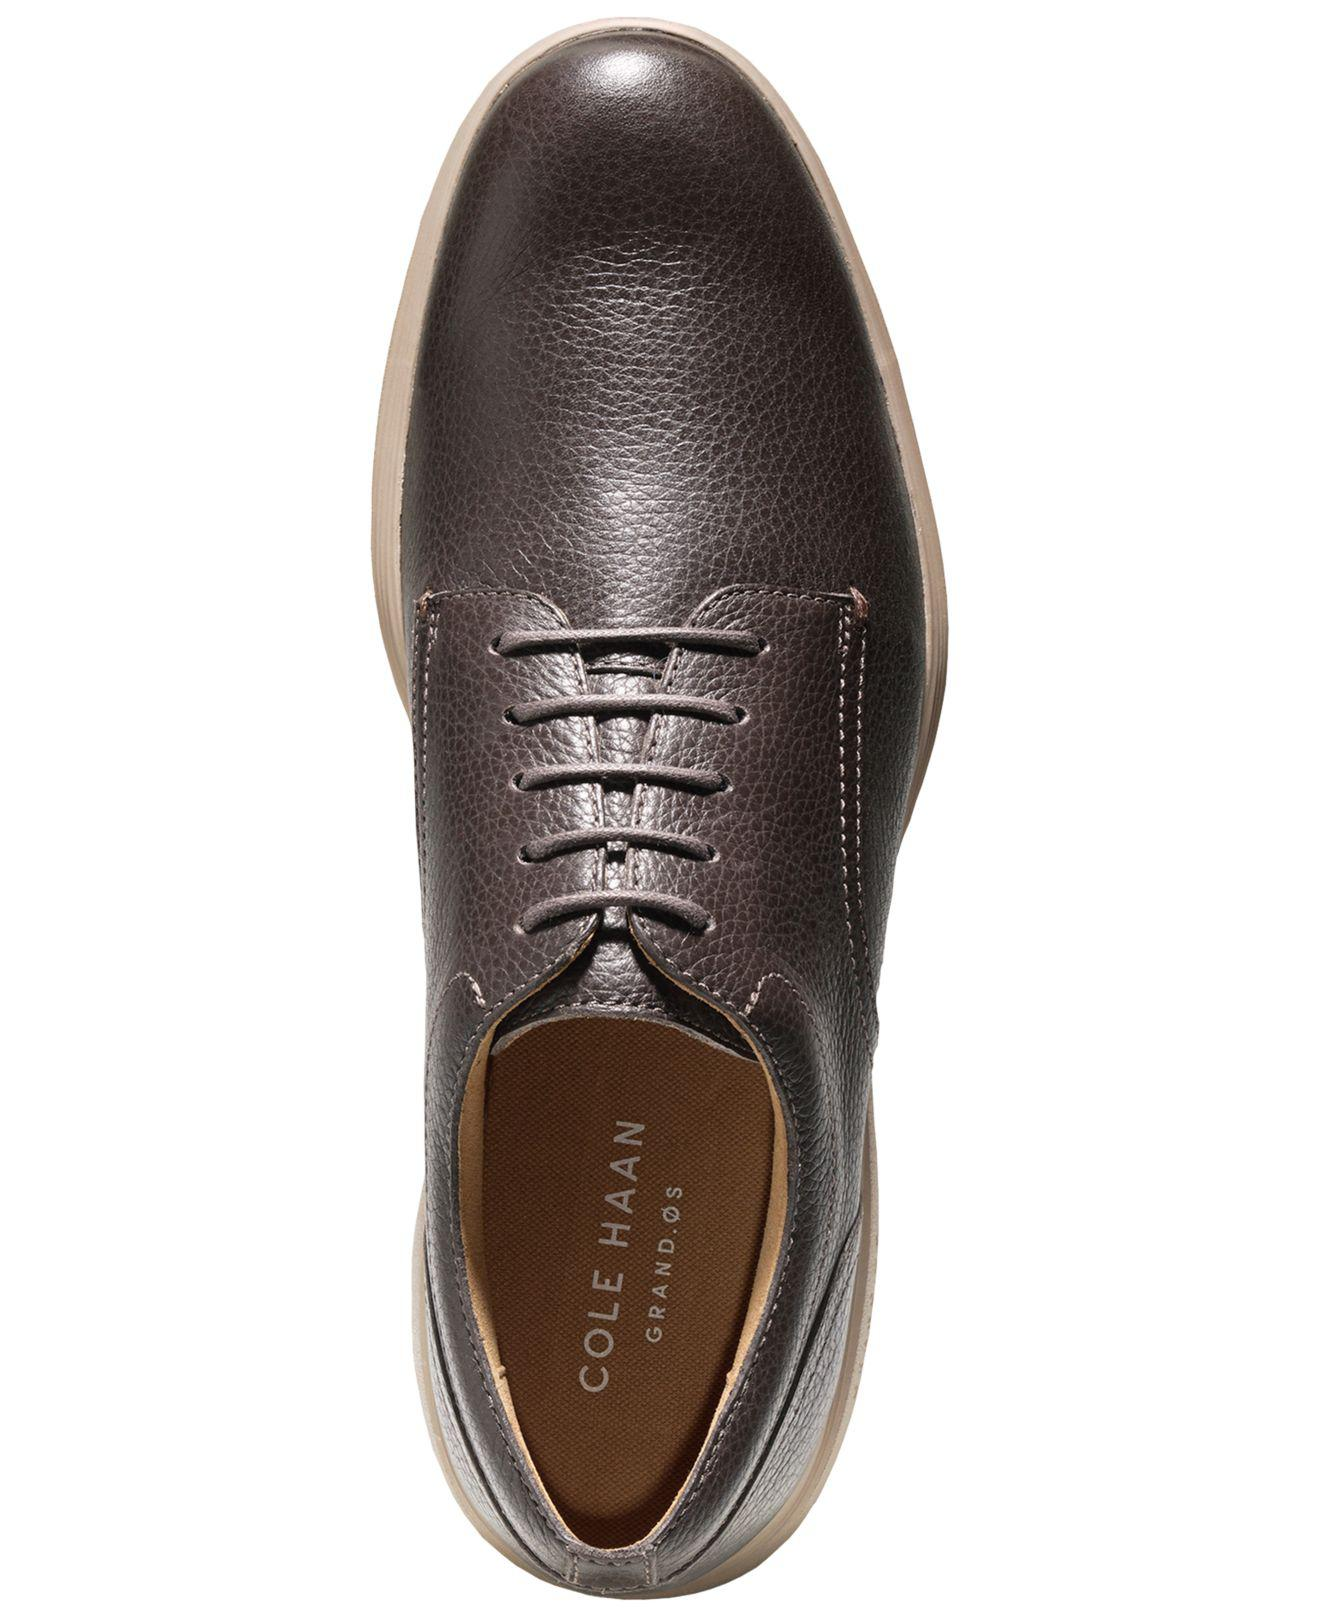 a0037babb3e Gallery. Previously sold at: Macy's · Men's Cole Haan Oxfords ...